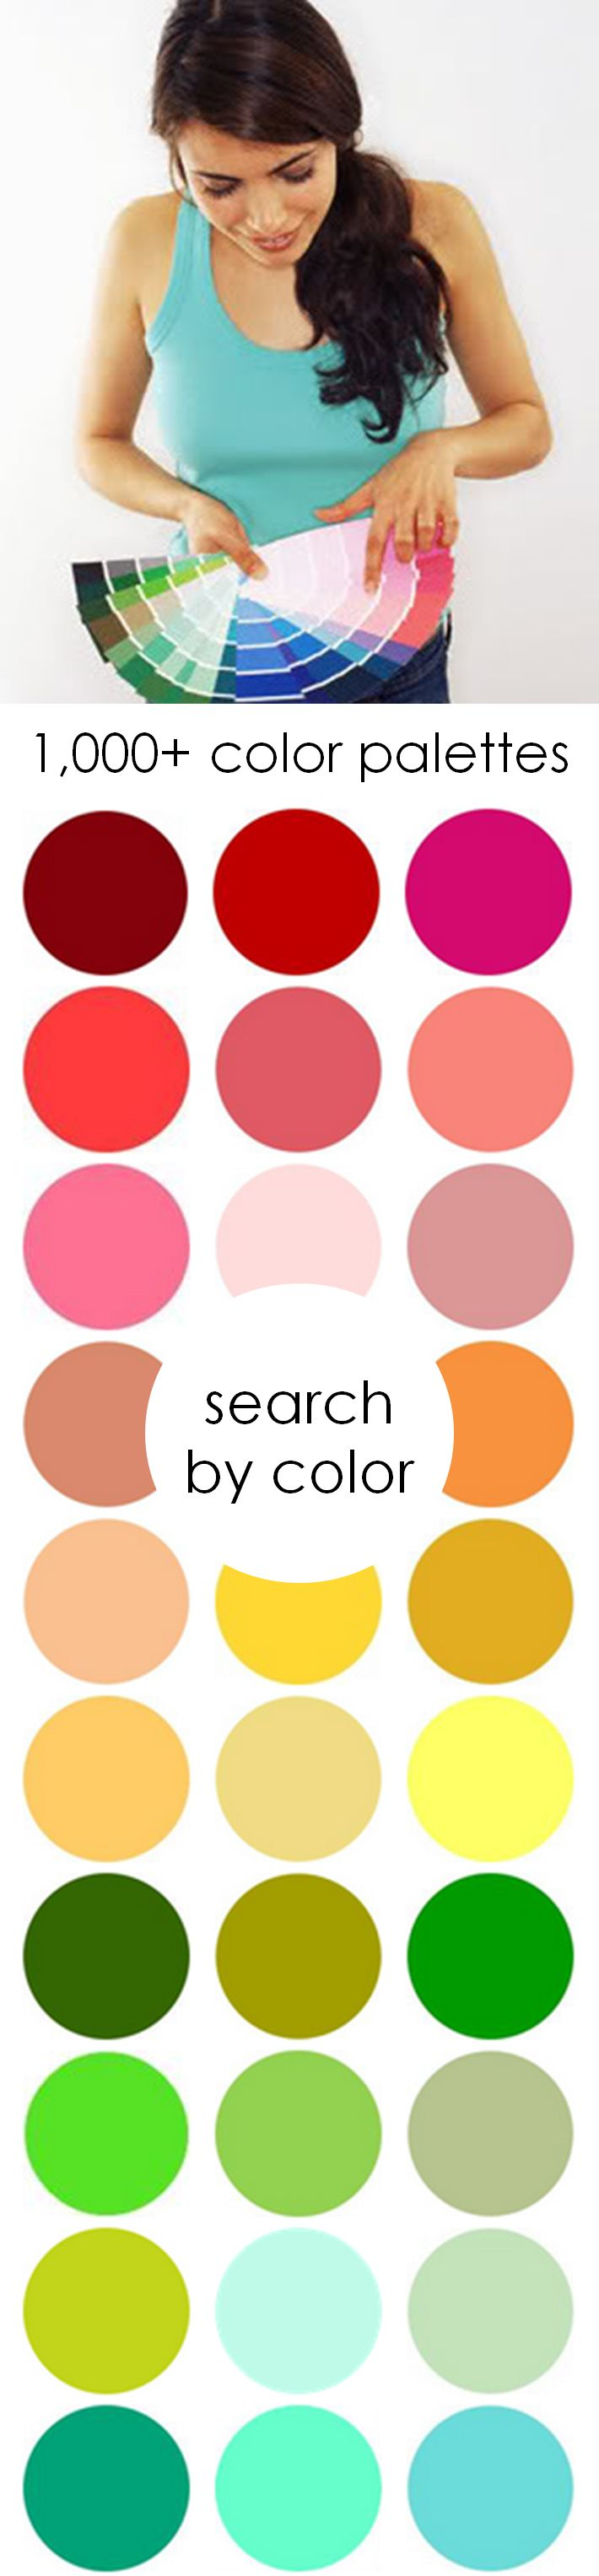 1,000+ color palettes. Color ideas for weddings, parties & life! Search by color! http://www.theperfectpalette.com/p/colors.html